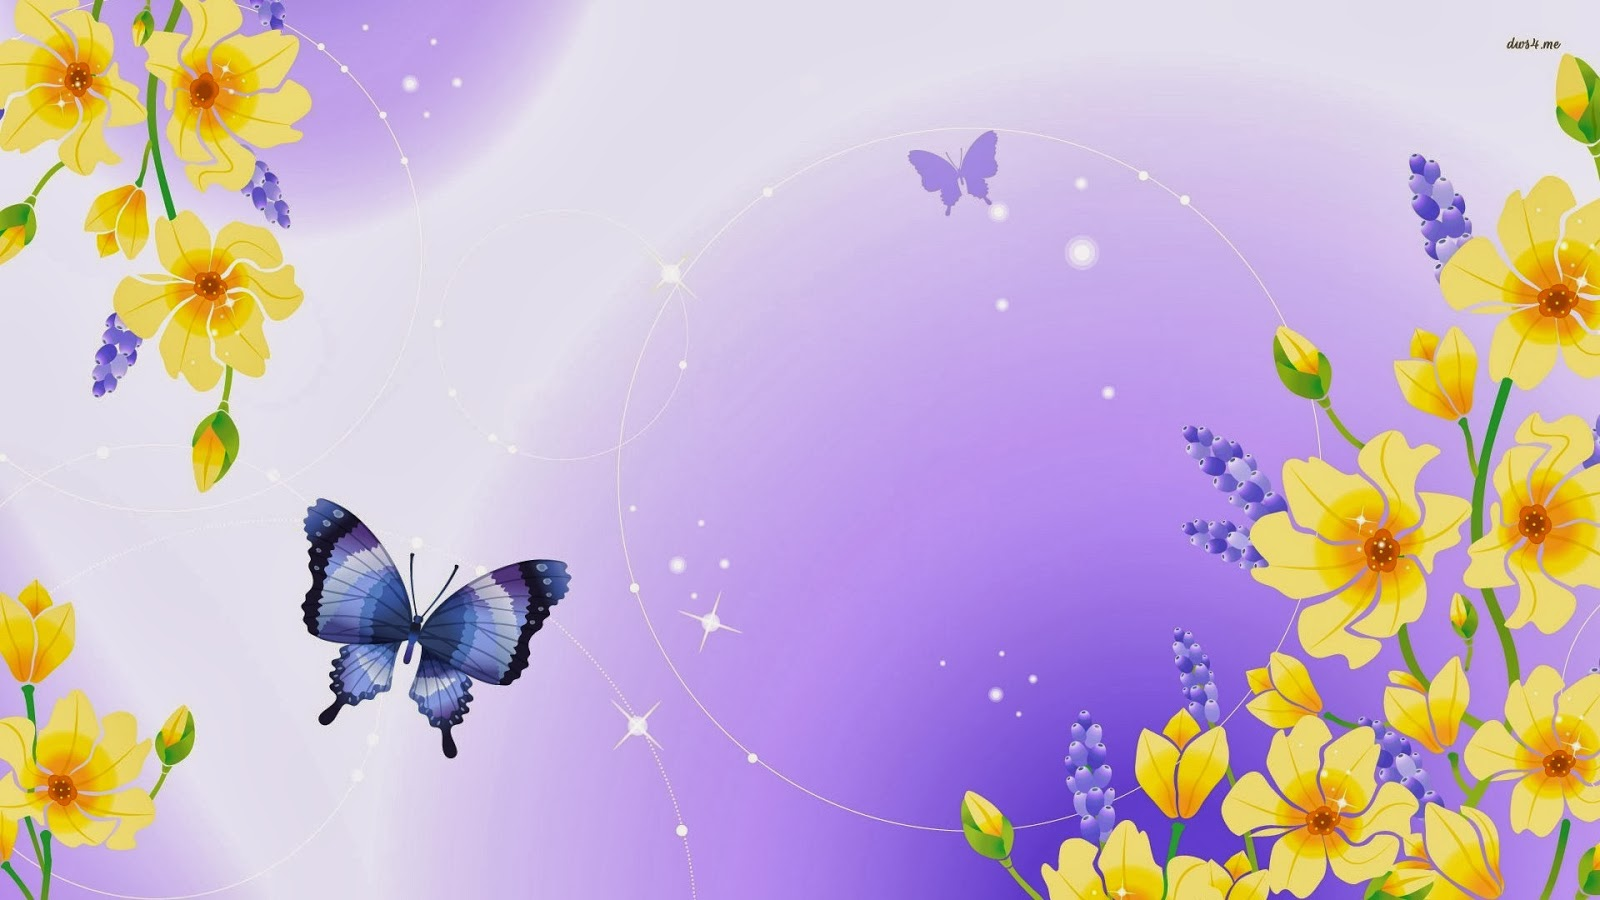 Cute butterfly wallpaper   SF Wallpaper Cute Butterfly Wallpaper